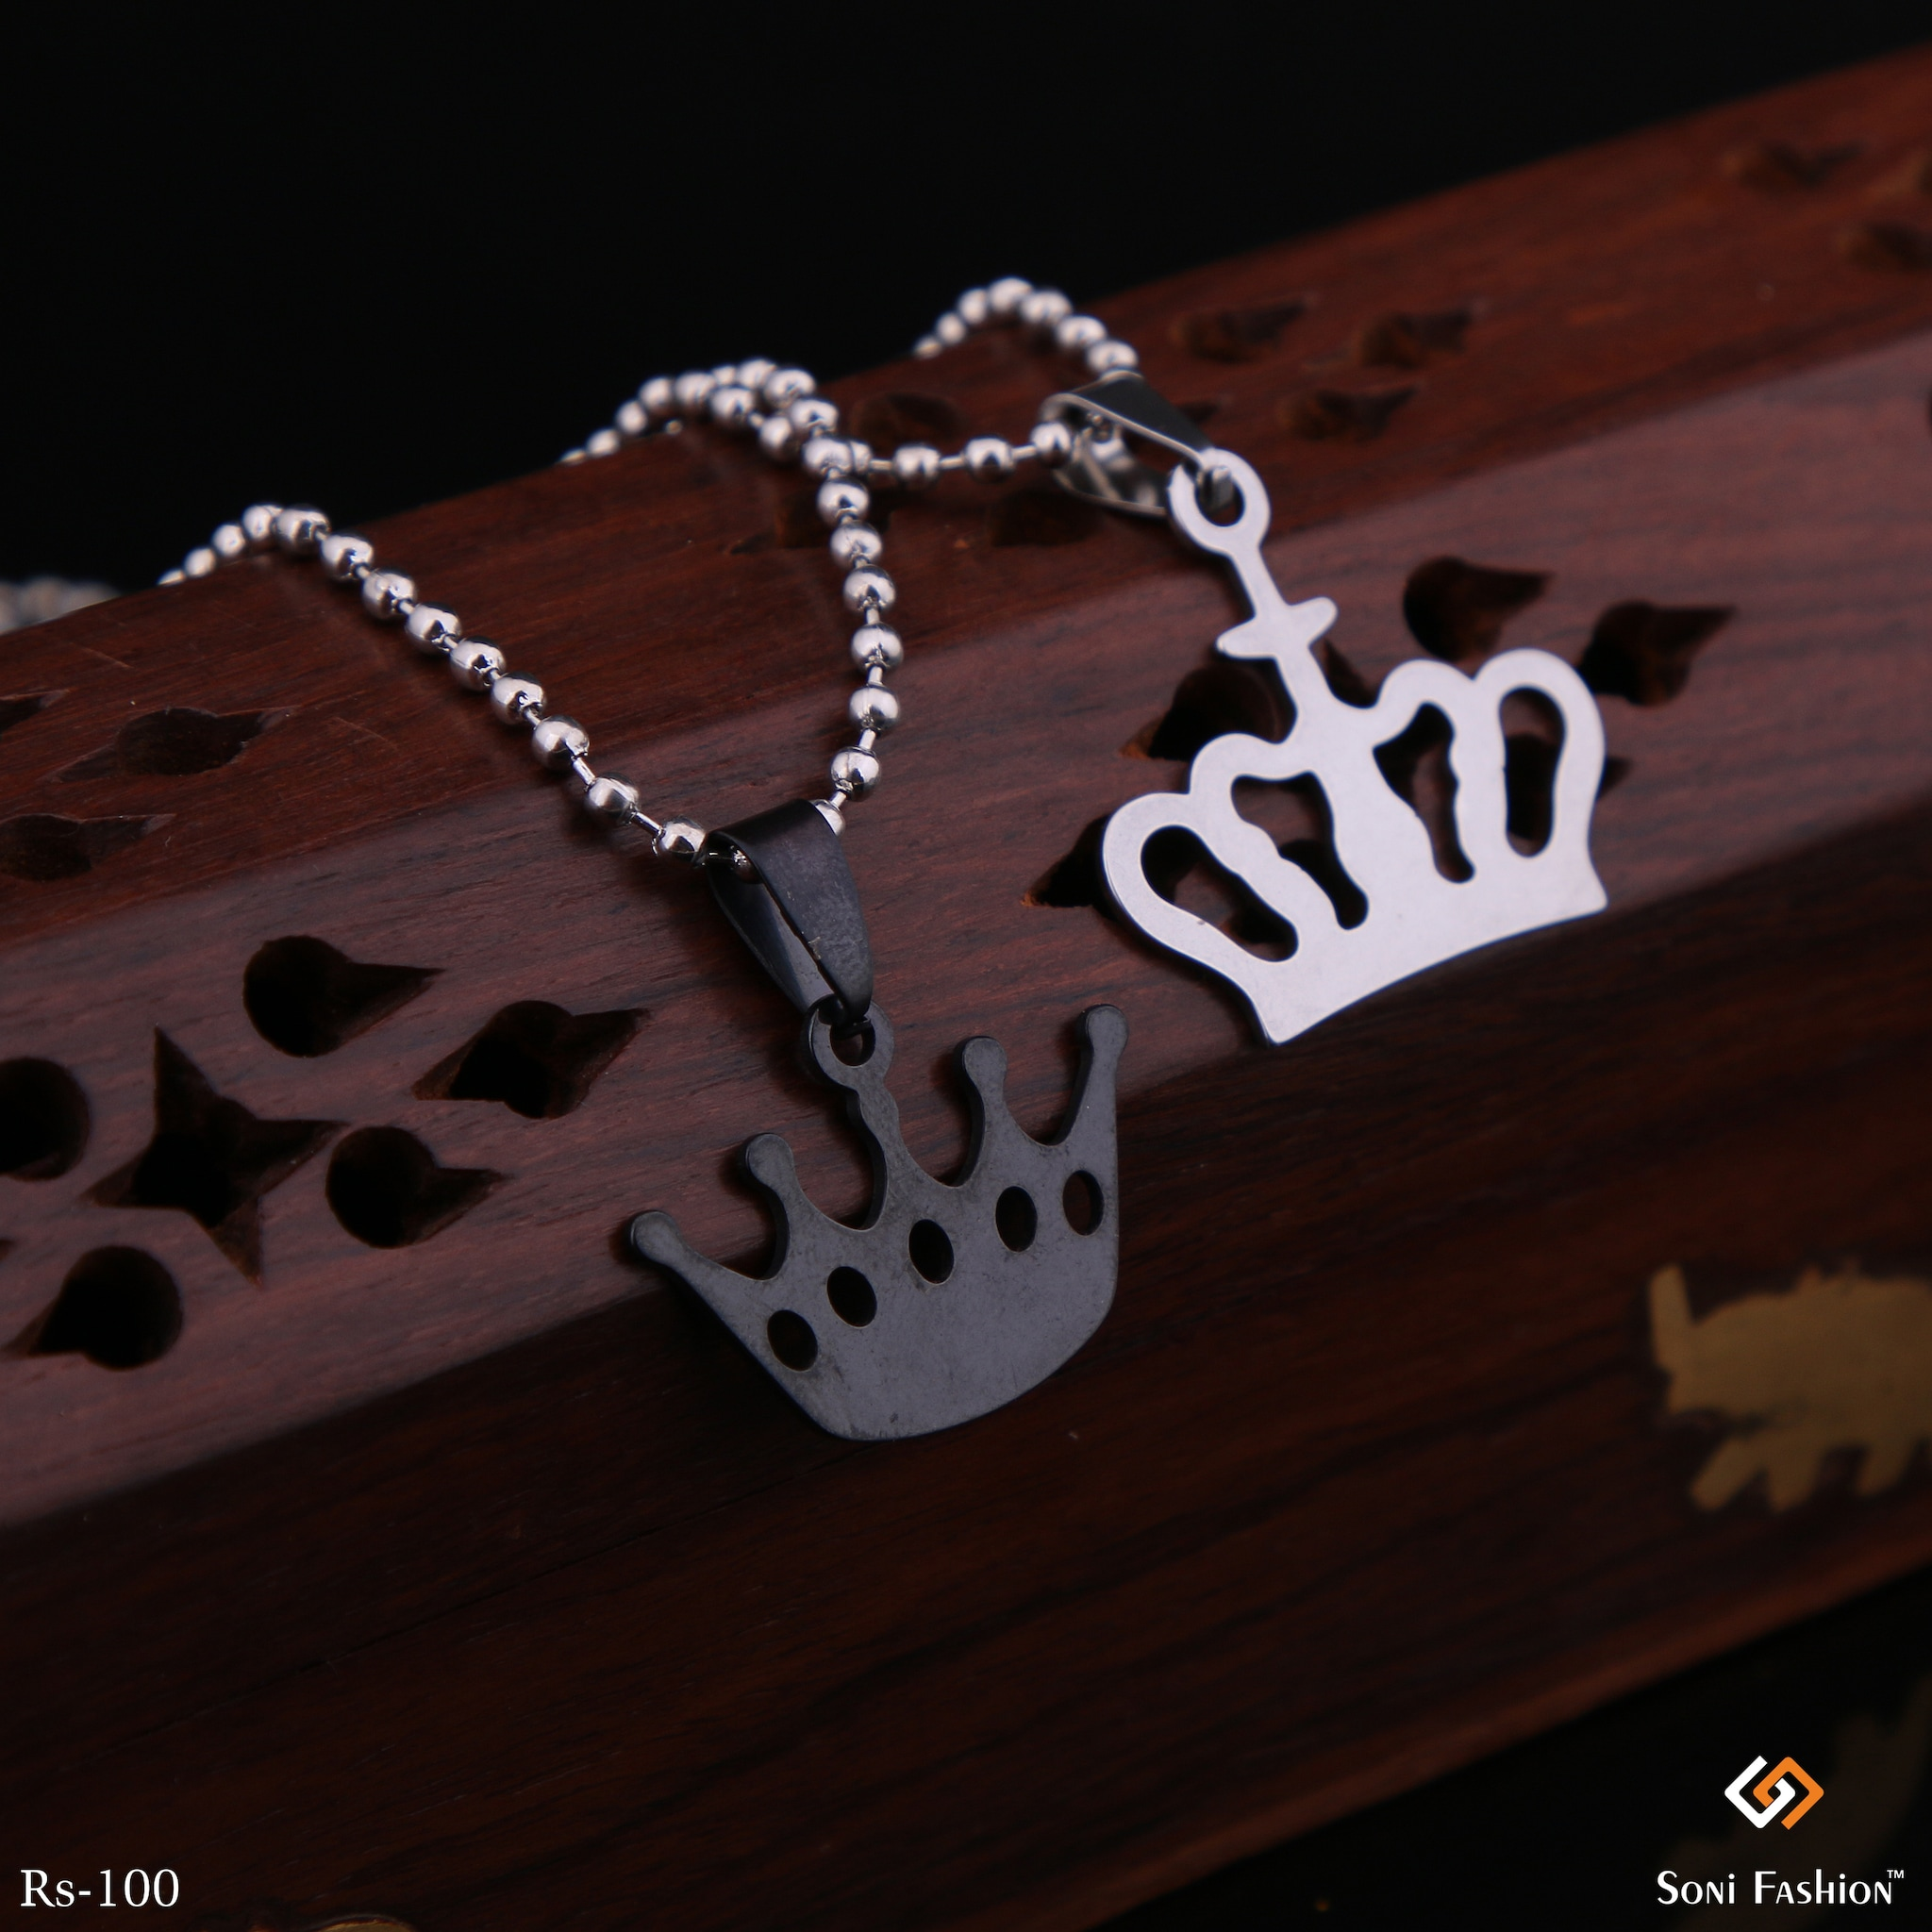 Pair Of Silver Chain With Silver King Pendant And Black Queen Pendant